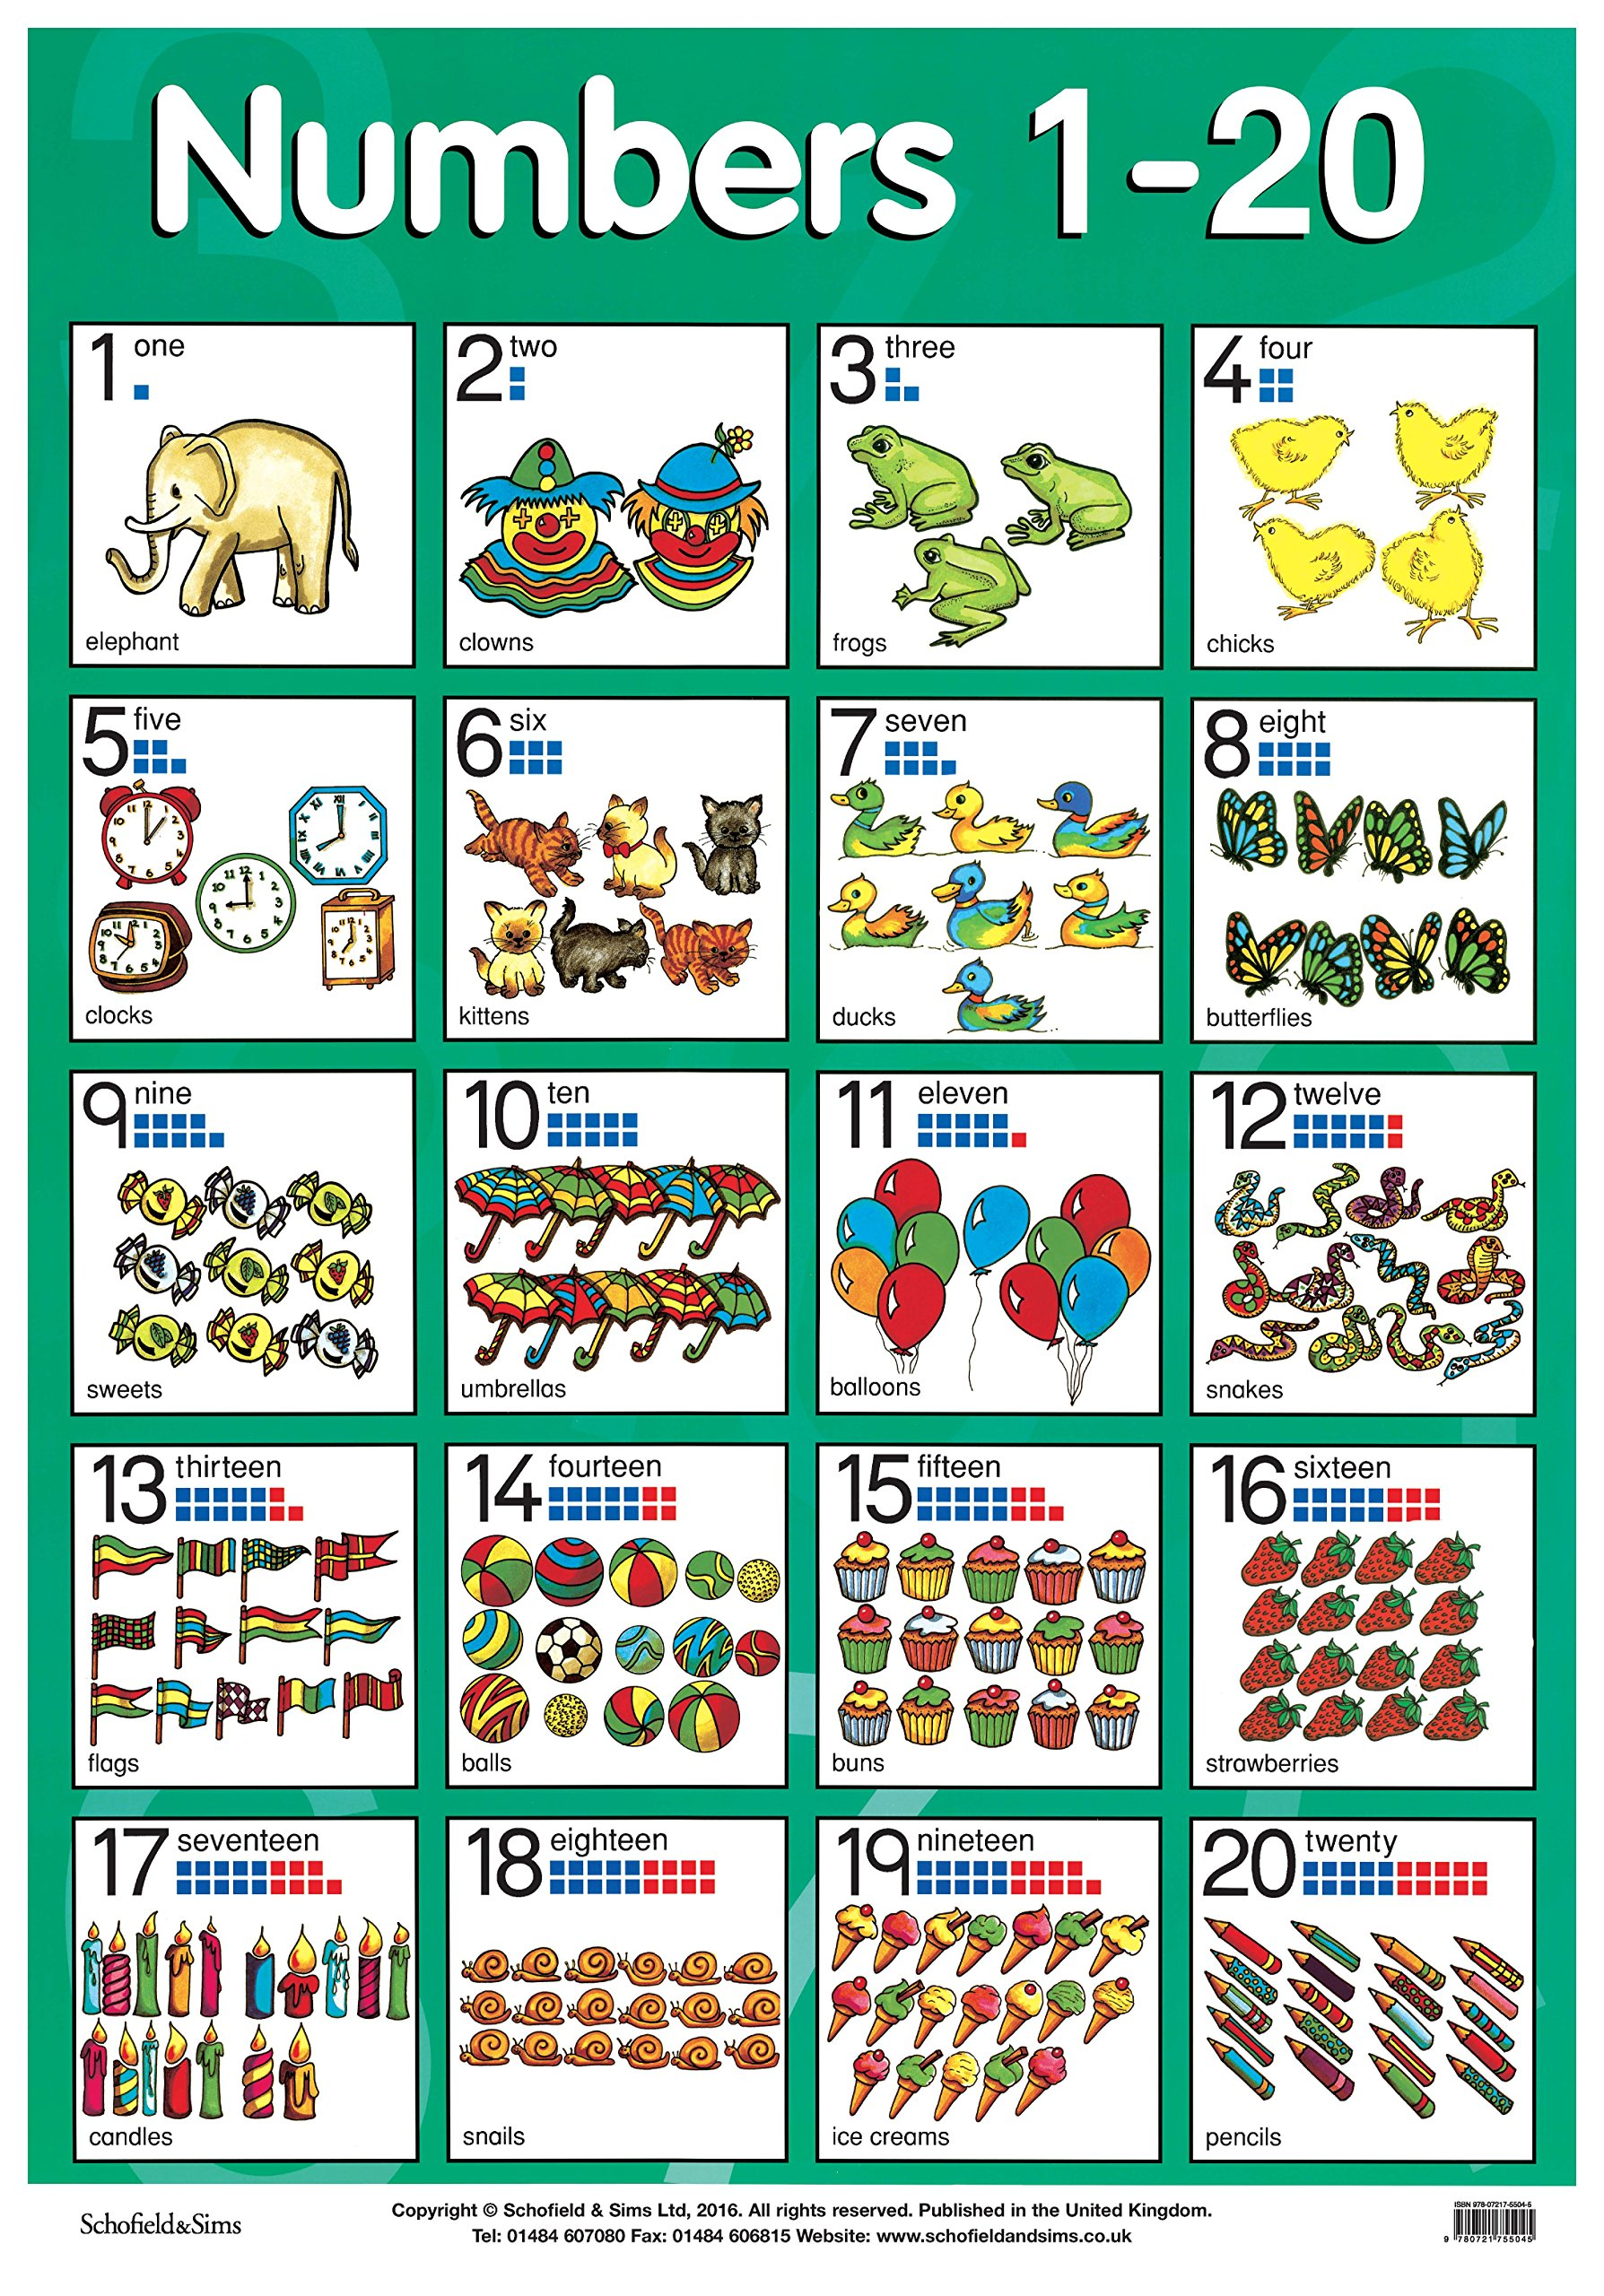 Worksheet Number Chart 1-20 numbers 1 20 laminated poster posters schofield sims 9780721755045 amazon com books